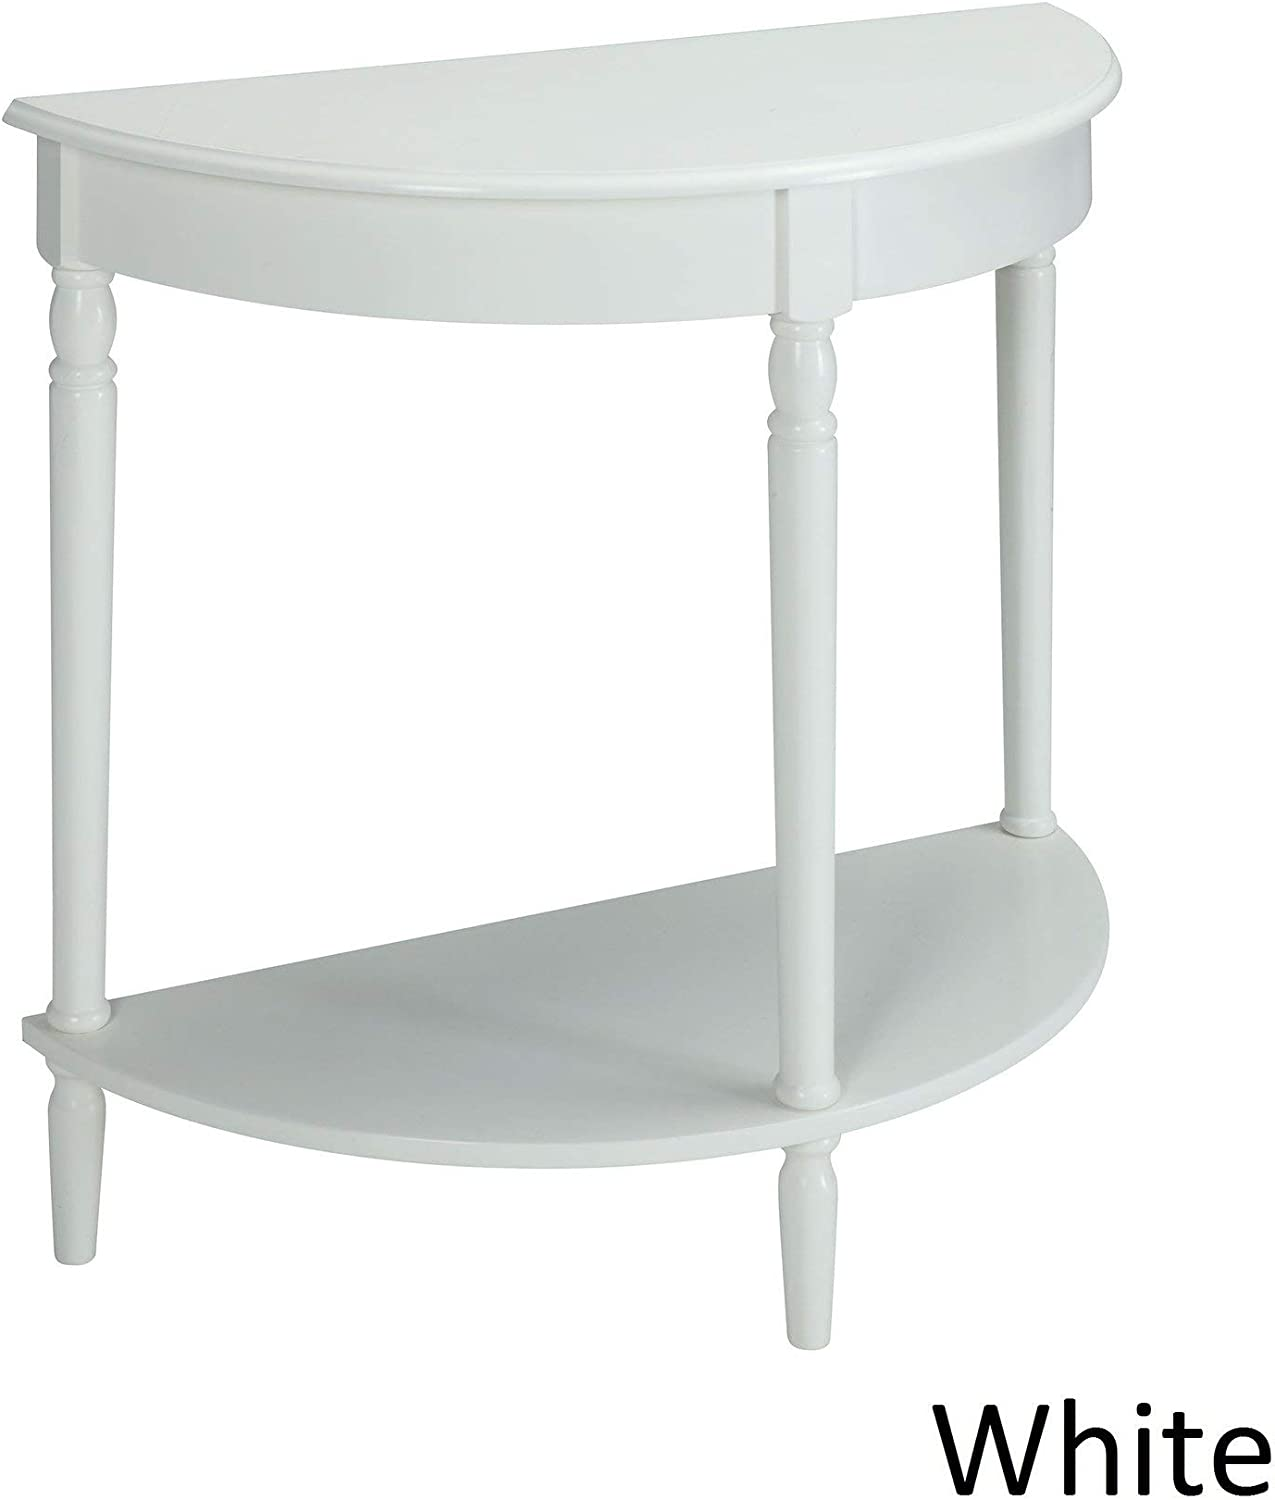 White Semi Circle Demilune Table For Small Hallway Entryway Space Wooden Half Moon Sturdy Console Tables Amazon Co Uk Kitchen Home